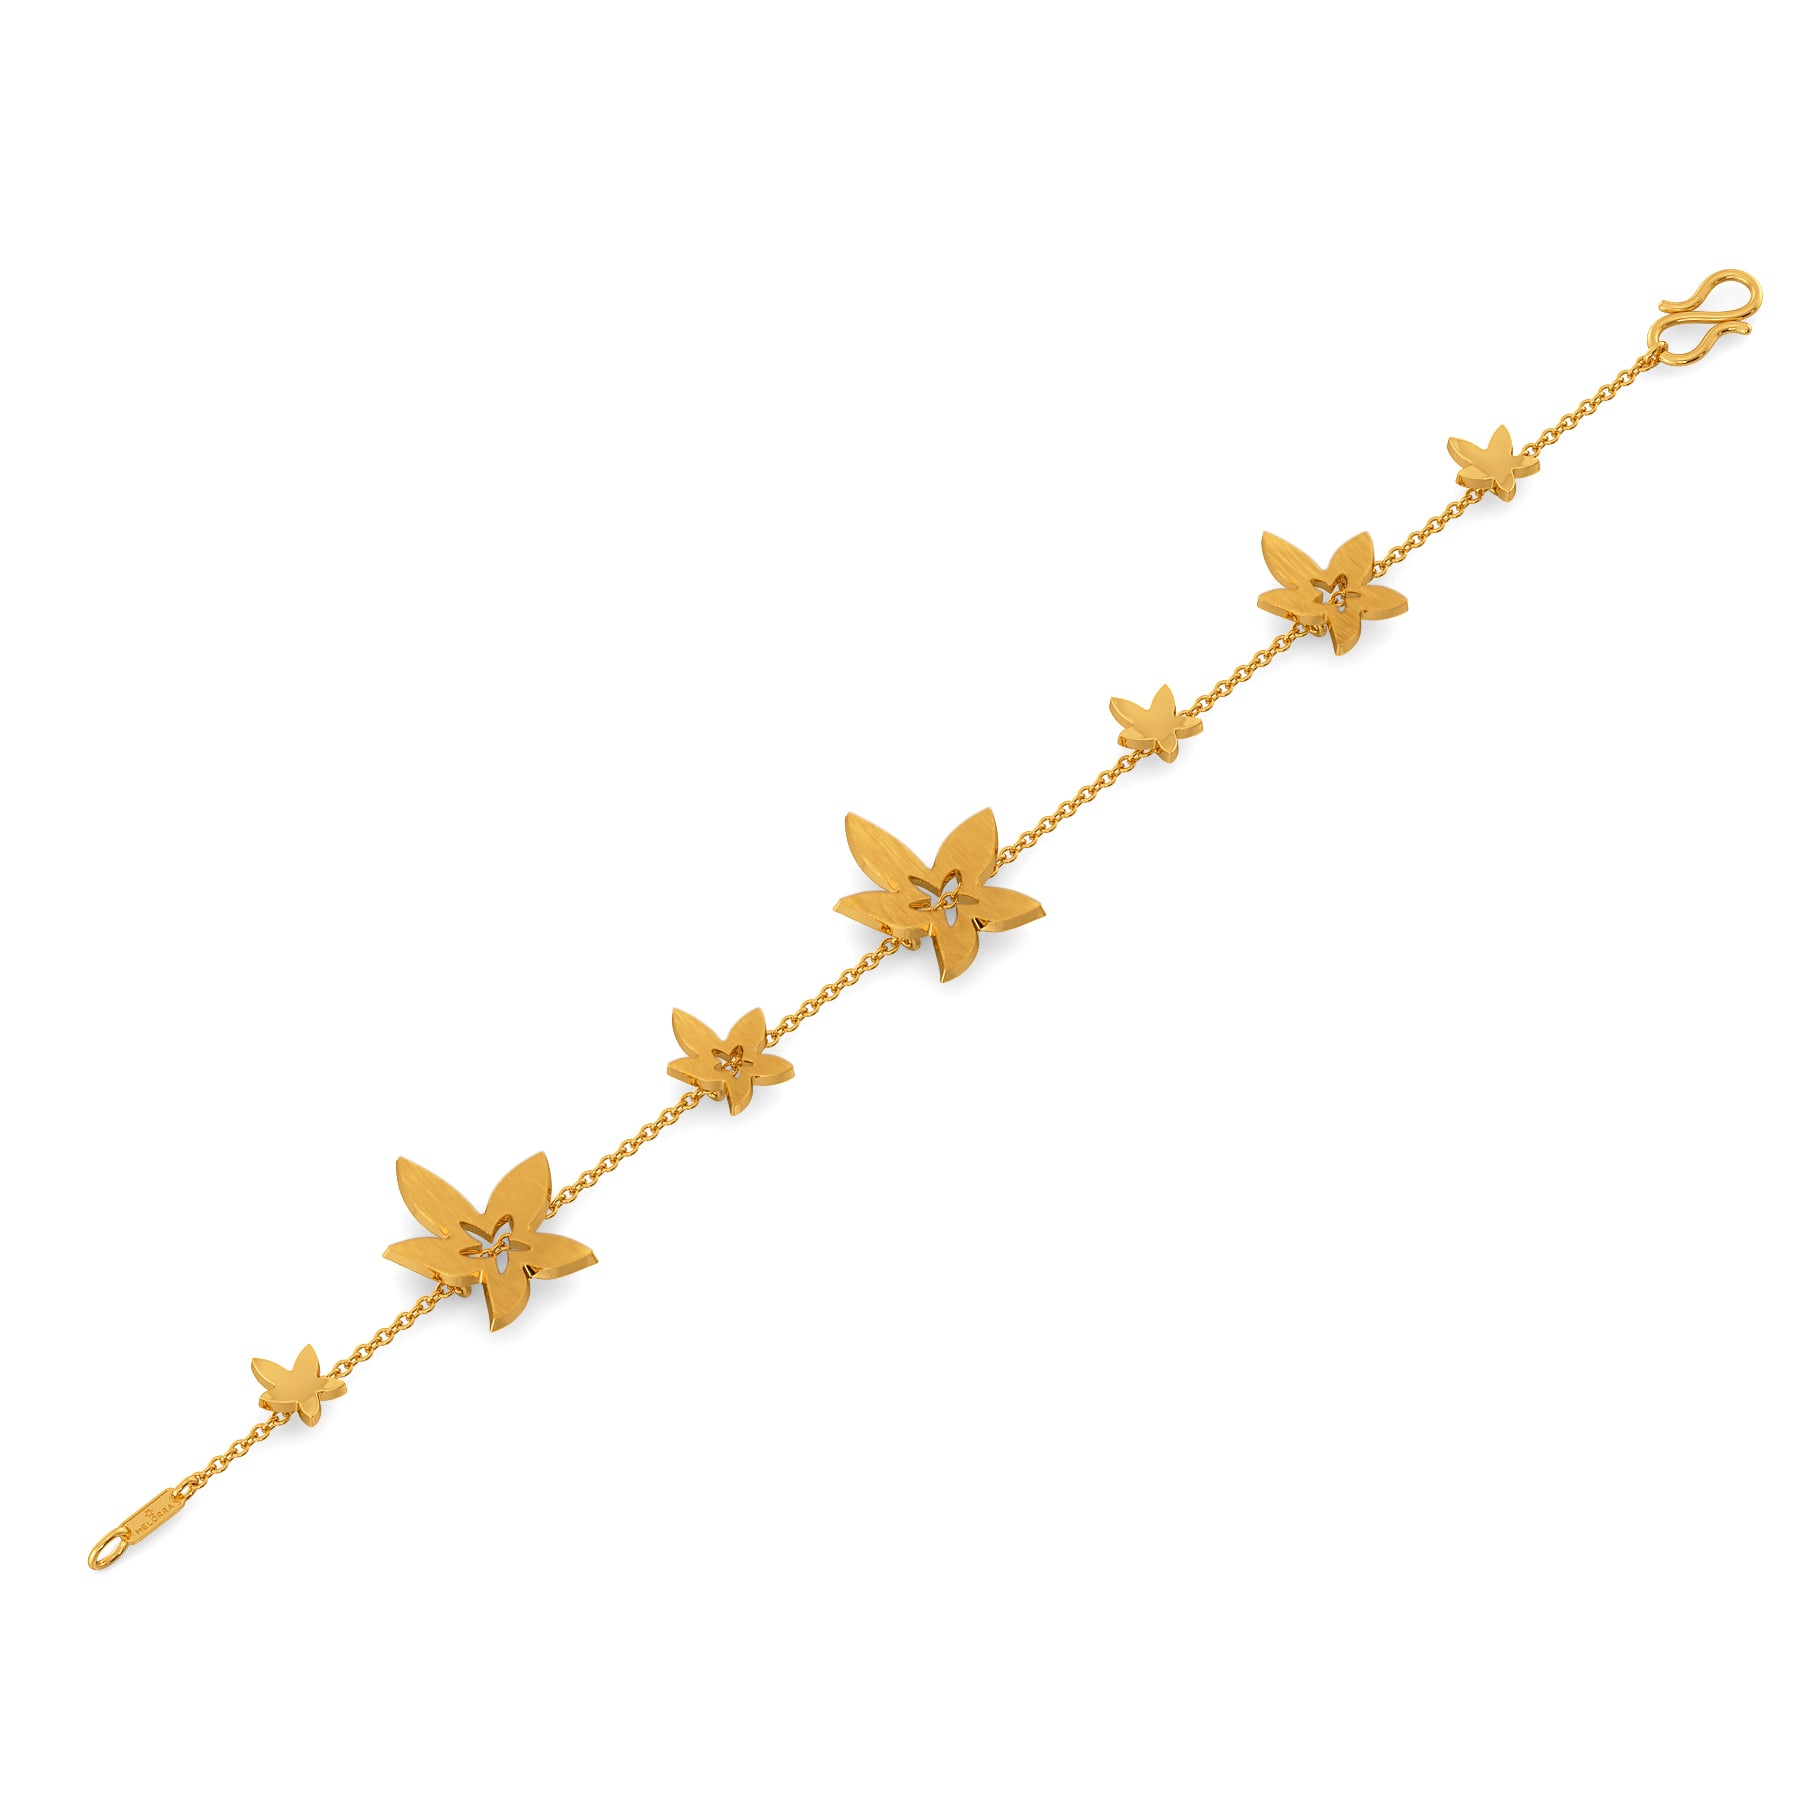 Golden Starflower Gold Bracelets